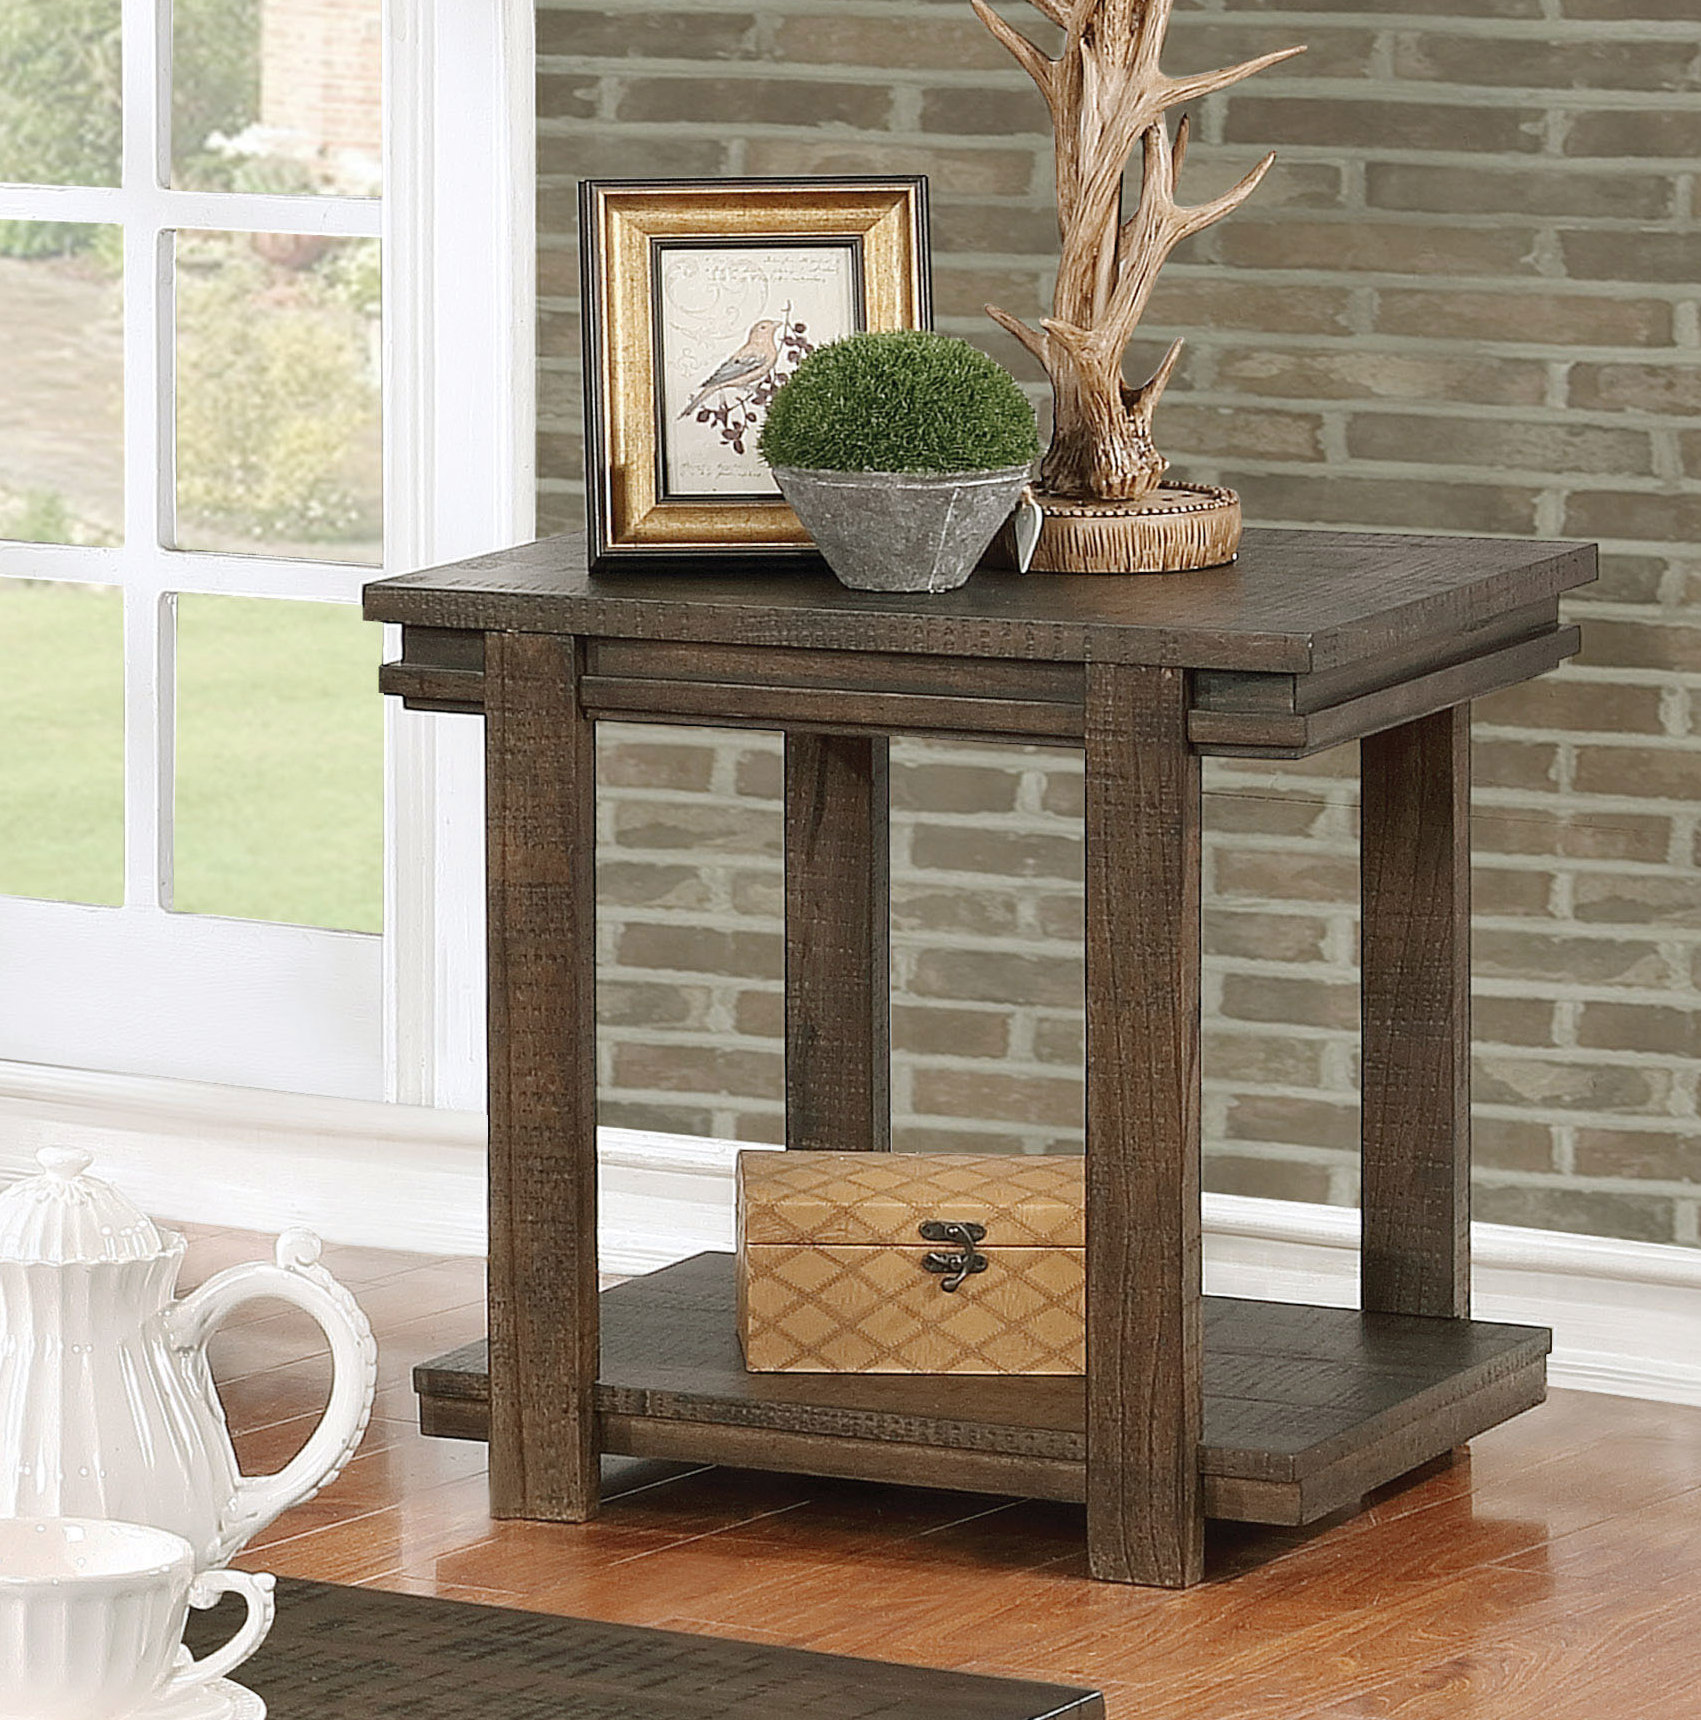 millwood pines stackhouse rustic end table reviews tables furniture row corporate office small sitting room design genuine leather black sofa simple behind couch ikea kmart